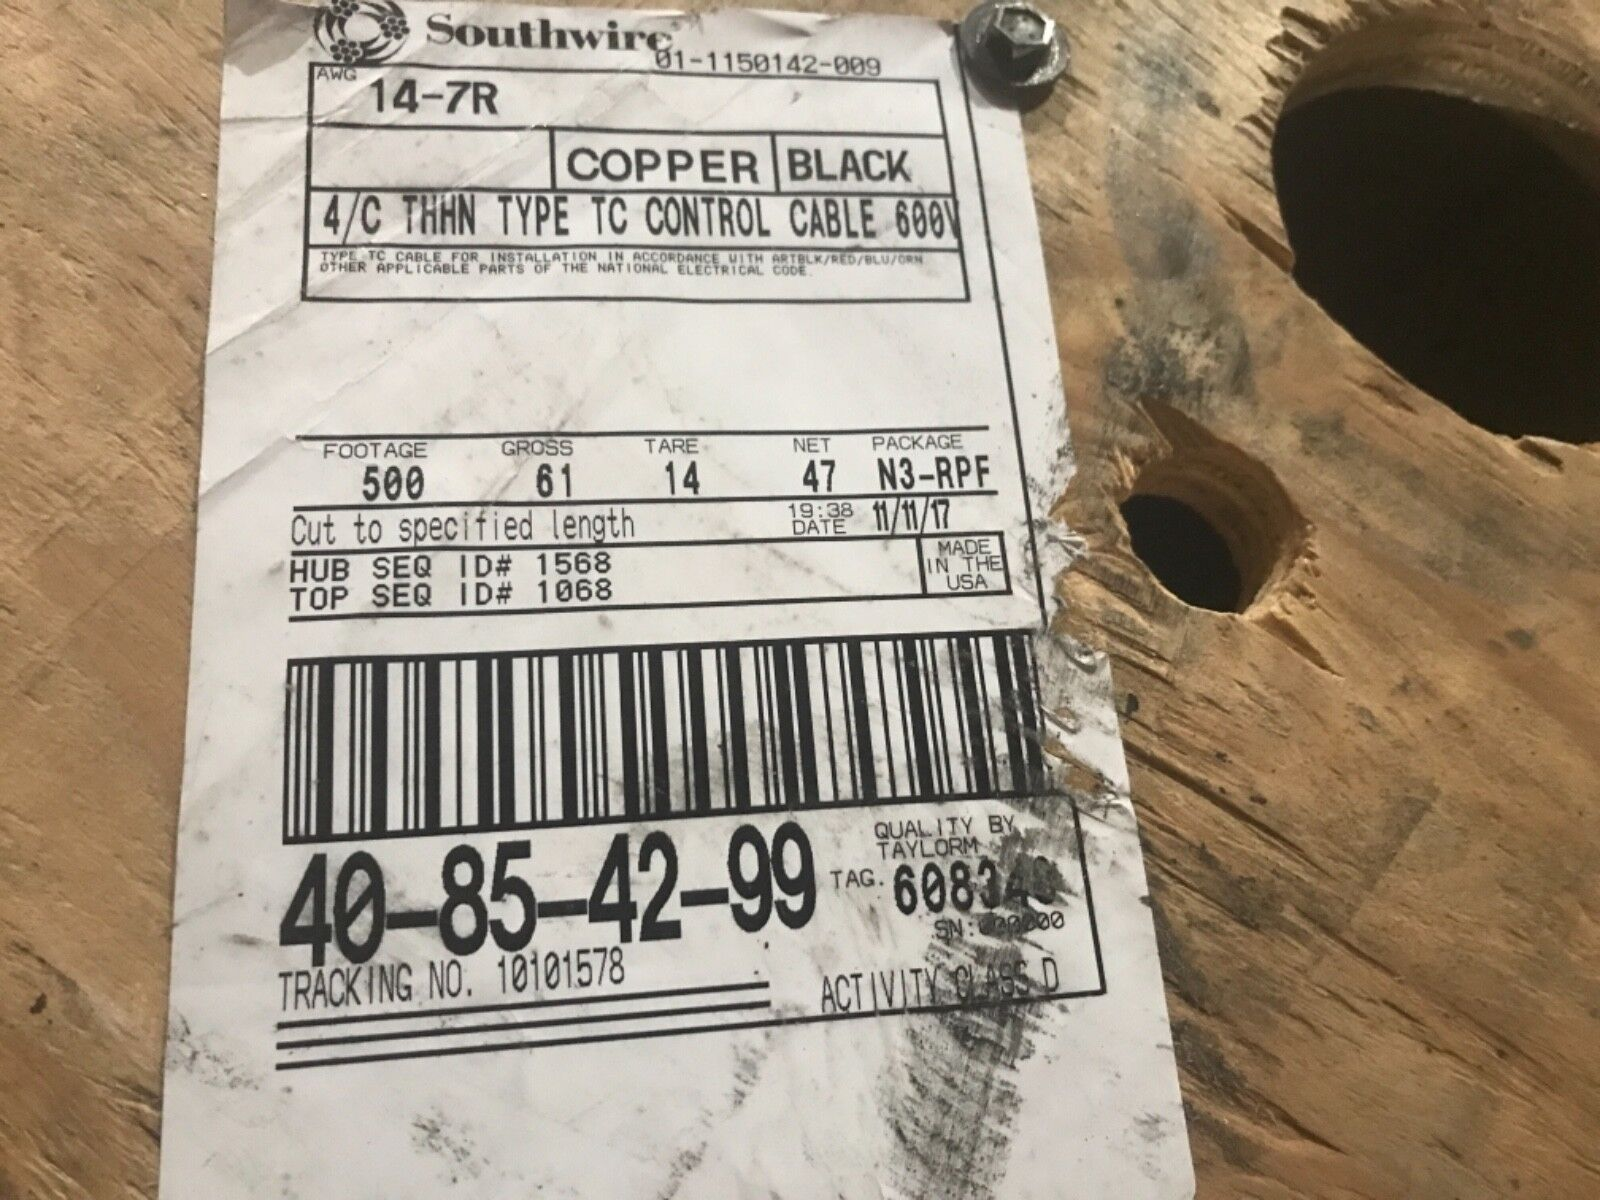 Southwire - 14-7R CU 4 C THHN Type TC Control Cable, 500 FEET